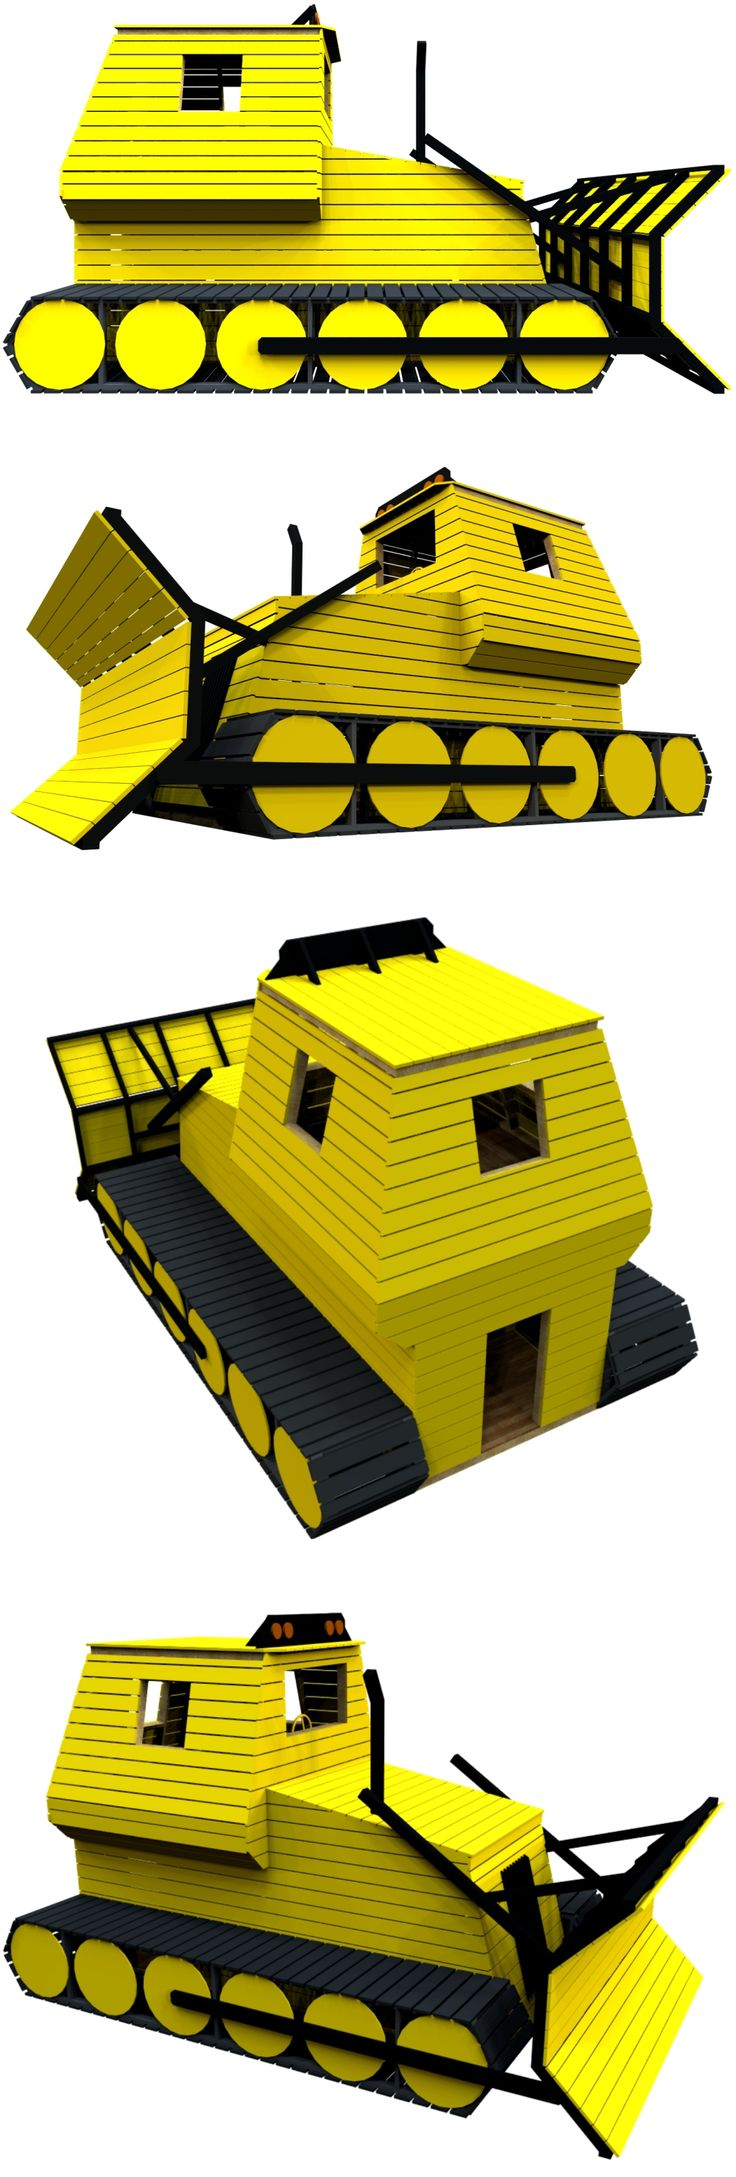 The bulldozer playhouse plan, hosted on paulsplayhouses.com.